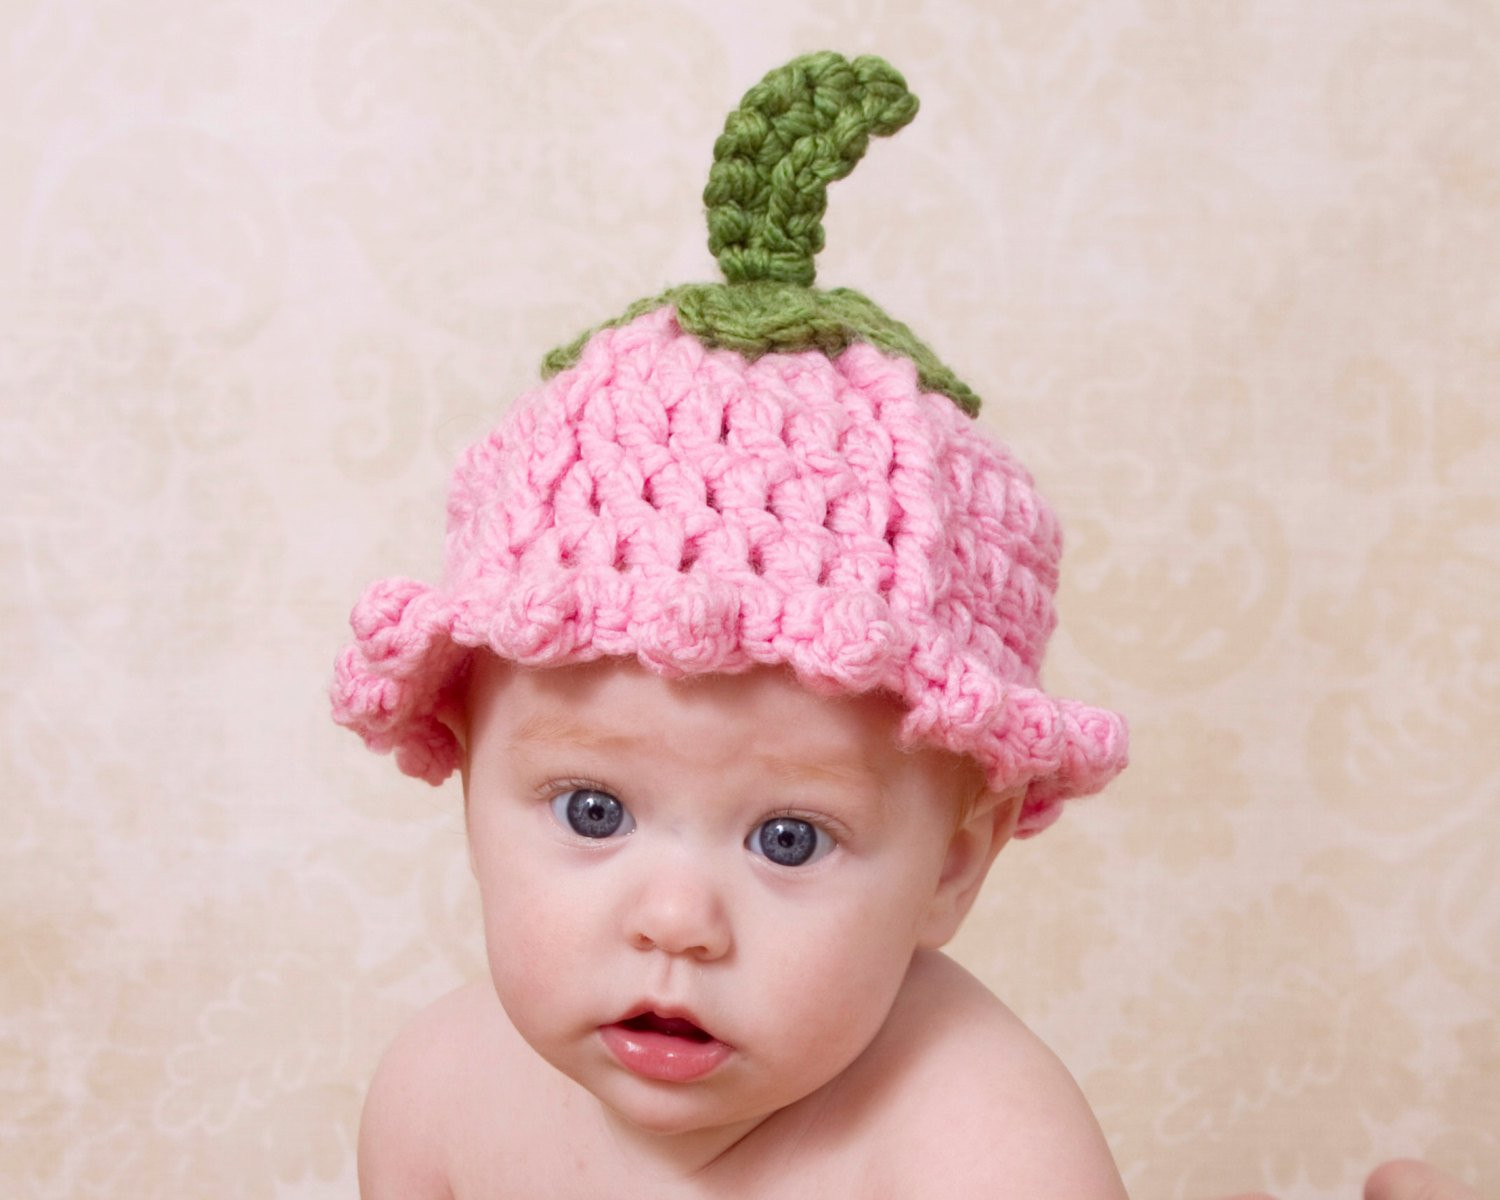 Awesome Pattern Flower Baby Hat Tulip Crochet Pattern Quick Flower Crochet Flower for Baby Hat Of Beautiful 42 Ideas Crochet Flower for Baby Hat